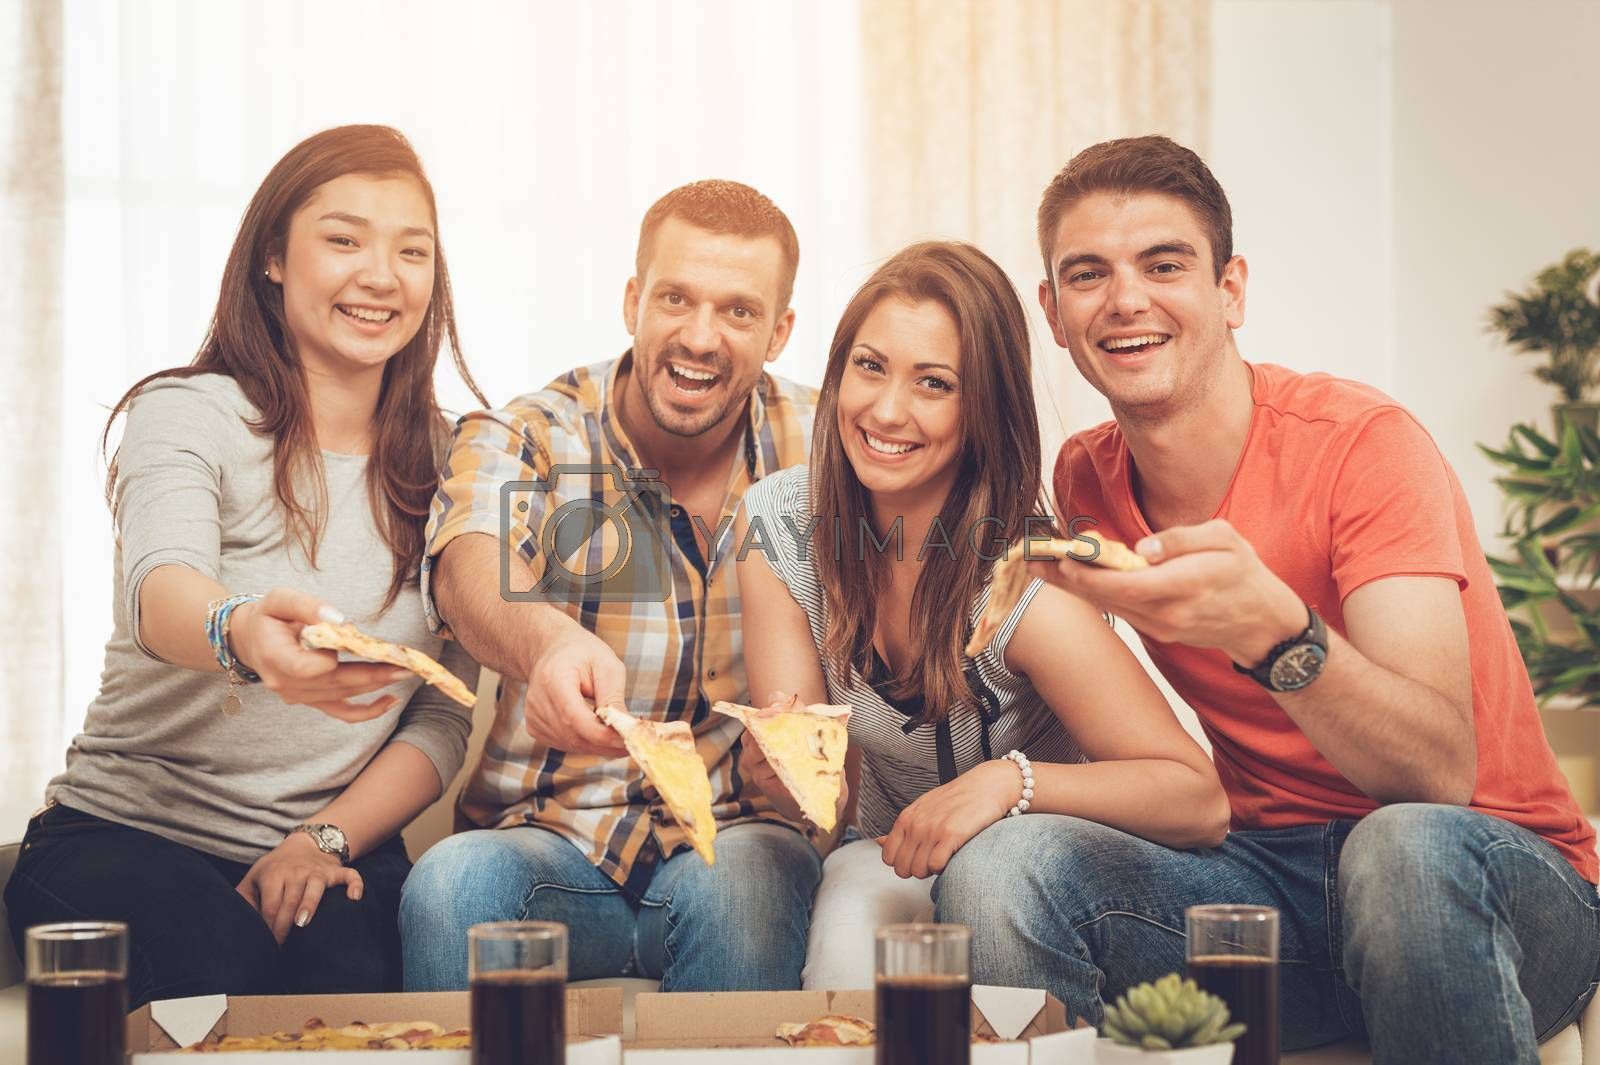 Four cheerful friends hanging out in an apartment. They are eating pizza and looking at camera.